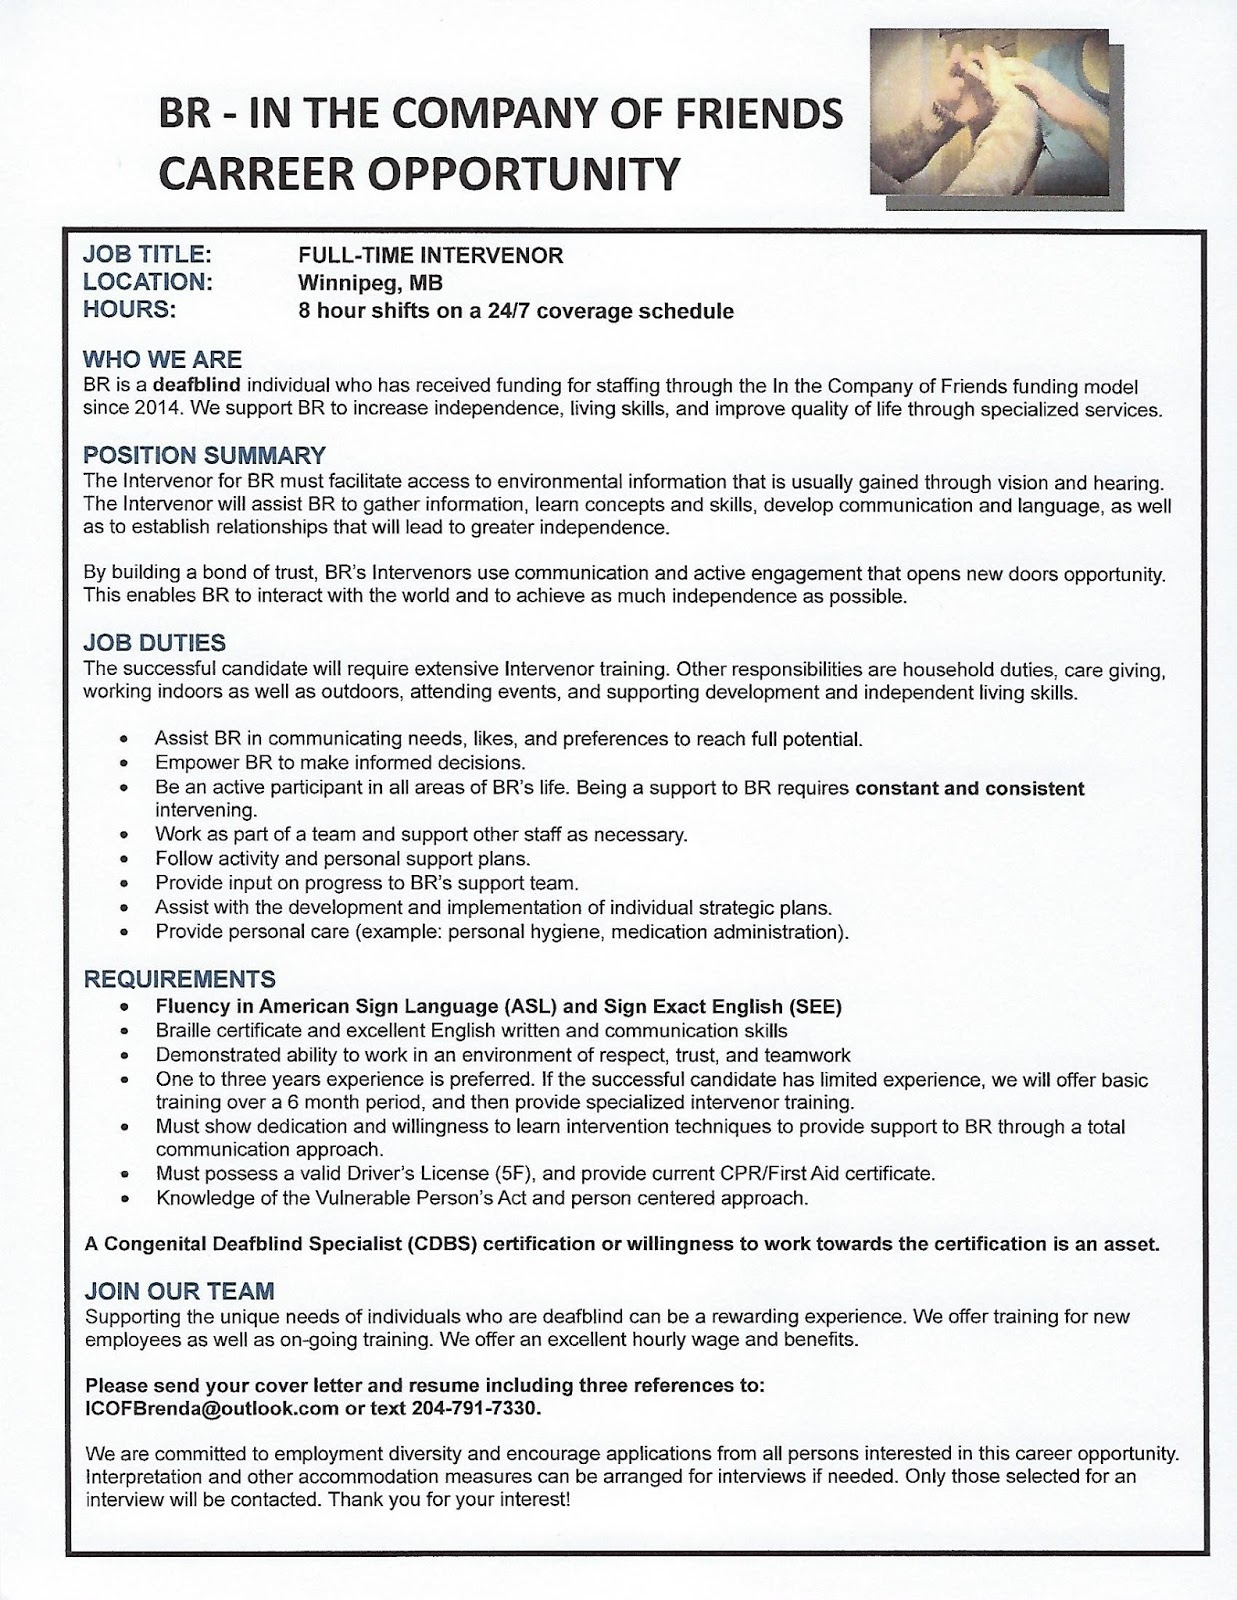 Cool Resume Companies Winnipeg Pictures Inspiration - Examples ...